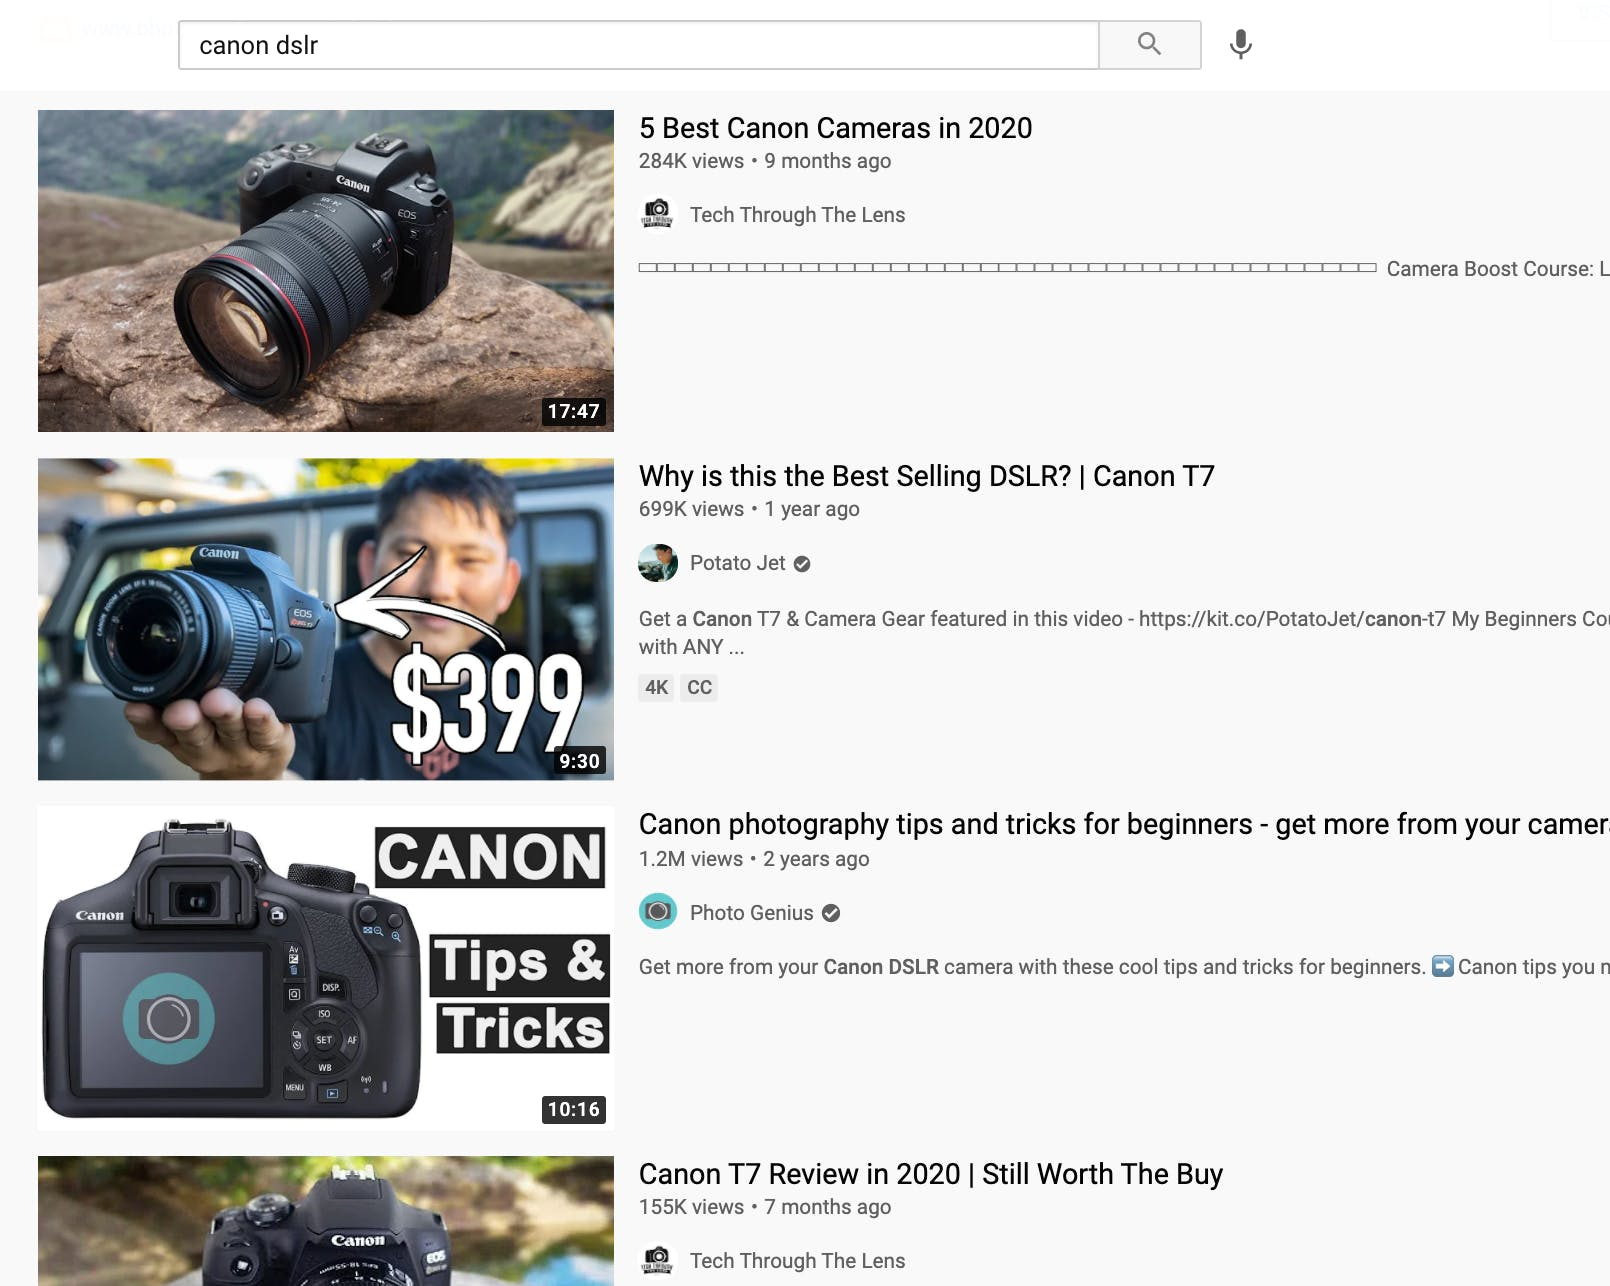 Search results for DSLR cameras on YouTube showing 4 videos from different channels